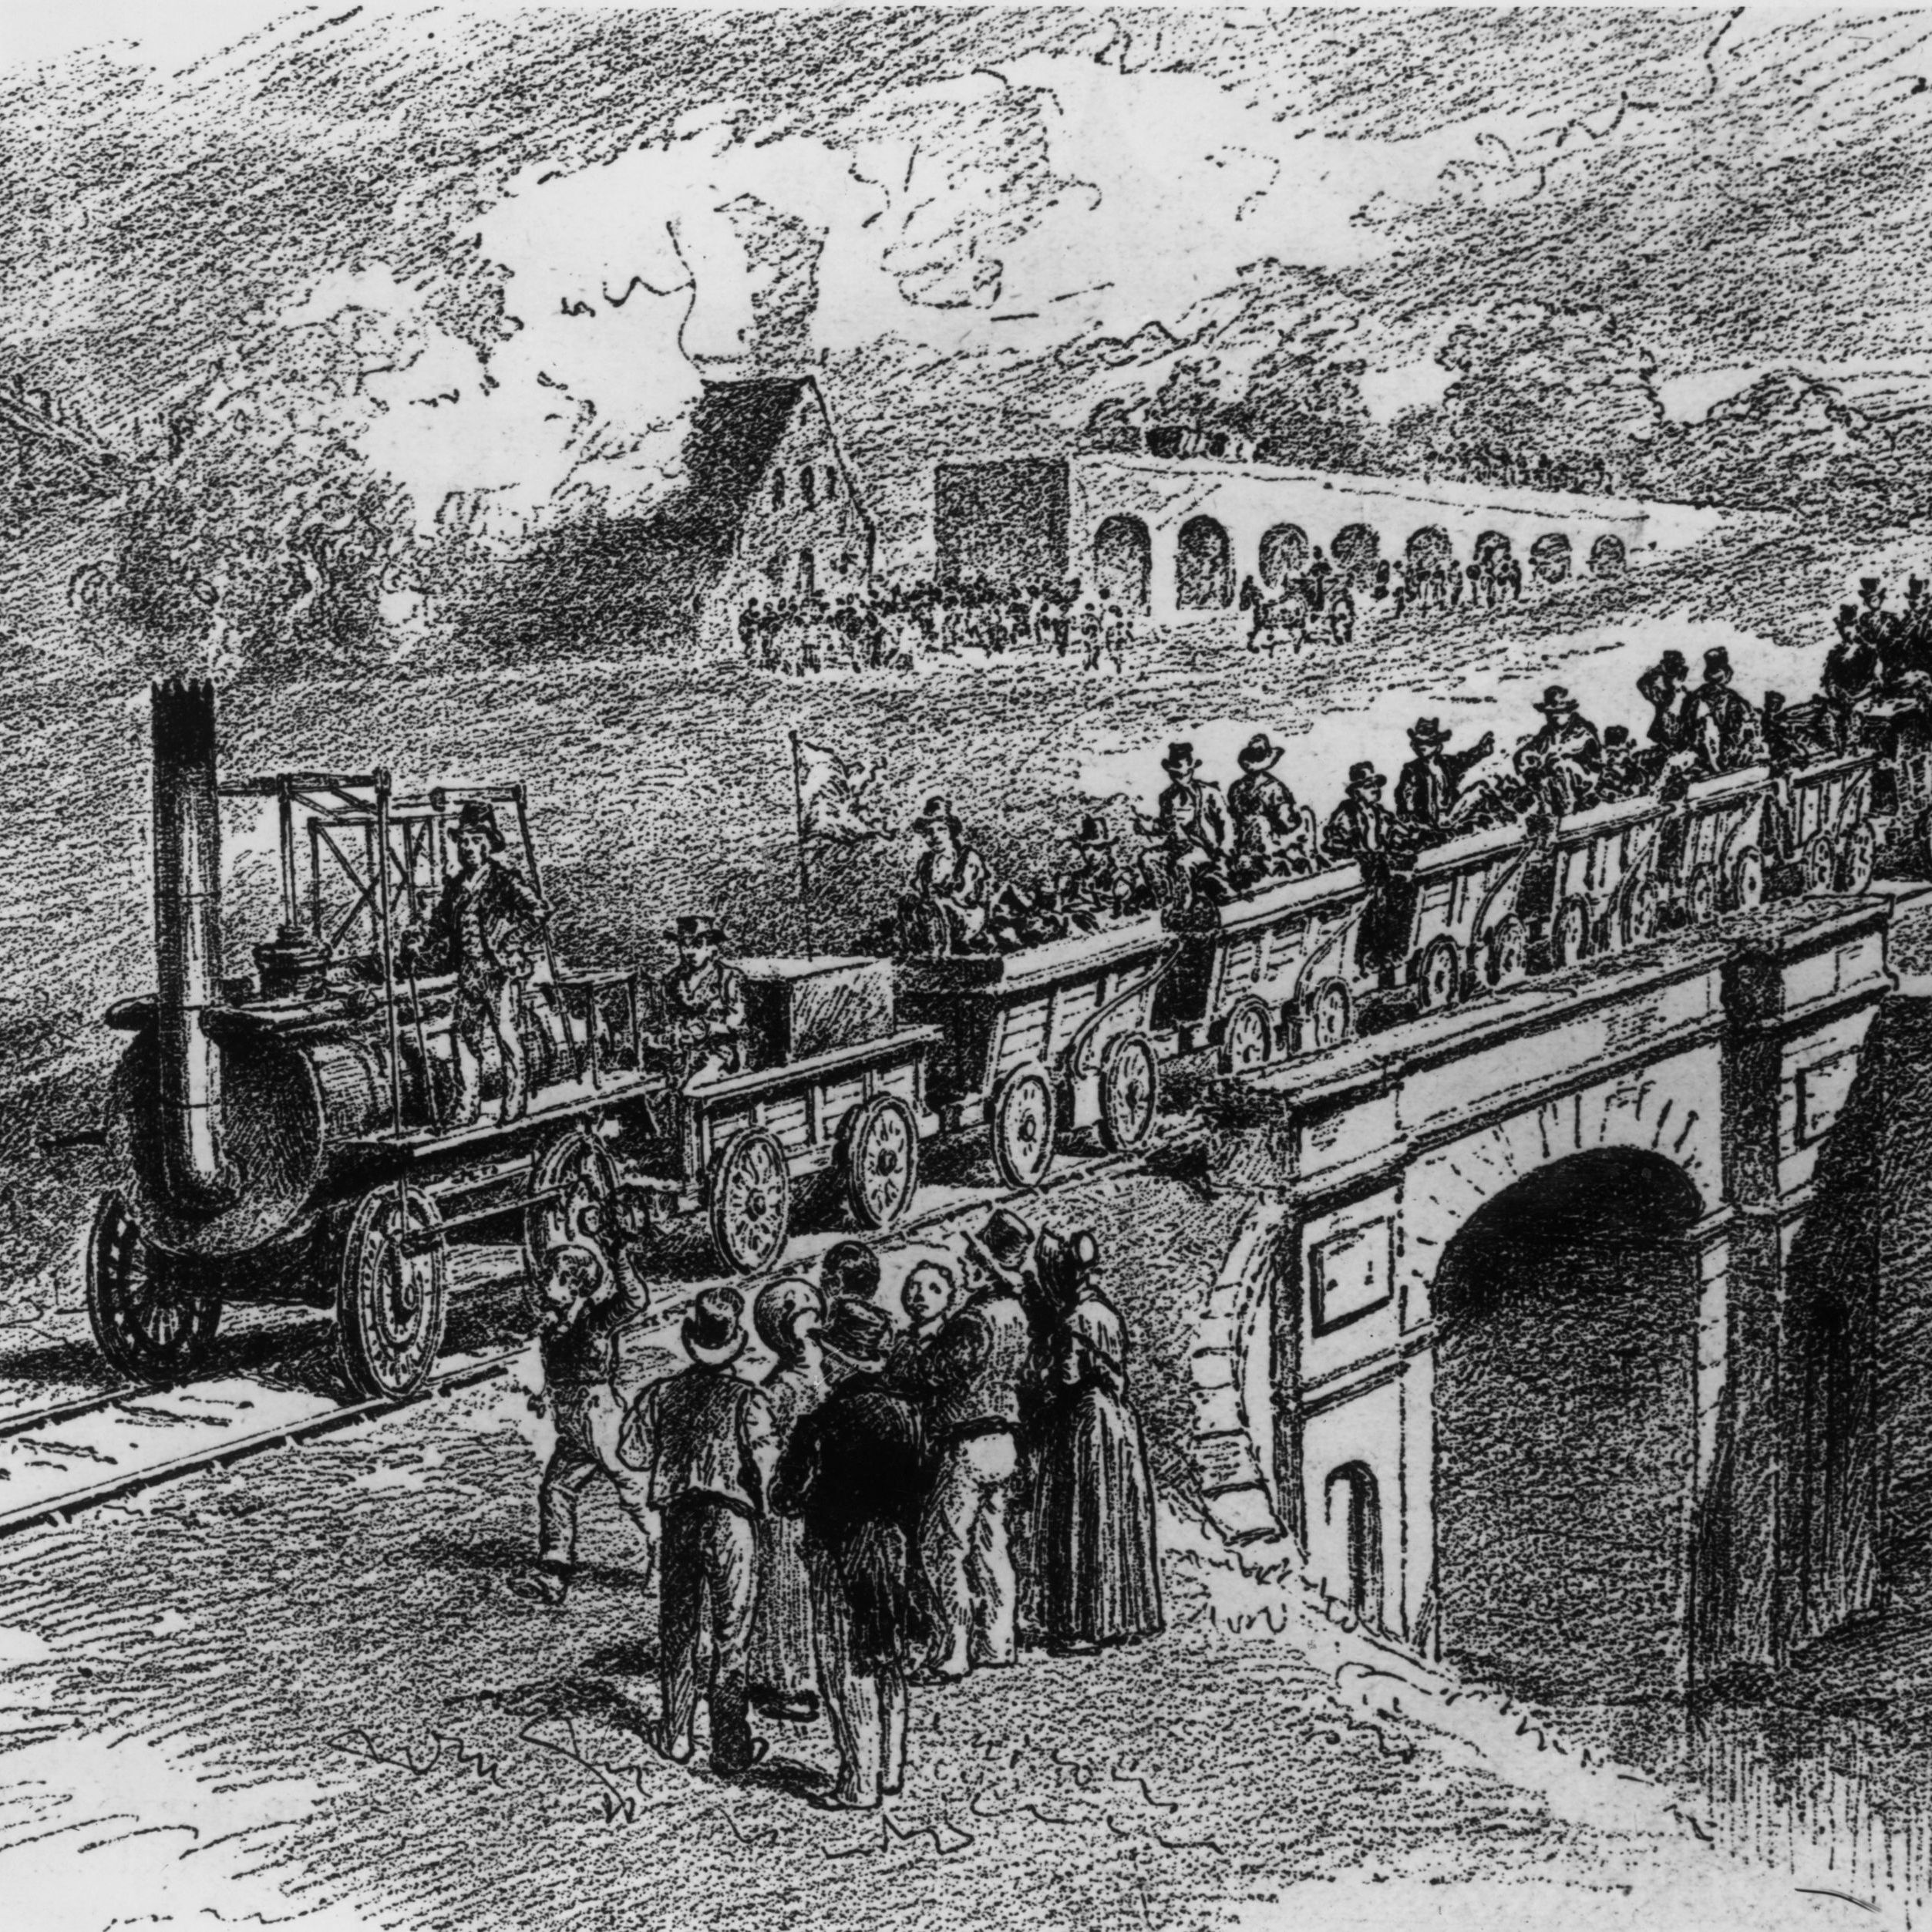 The Railways in the Industrial Revolution